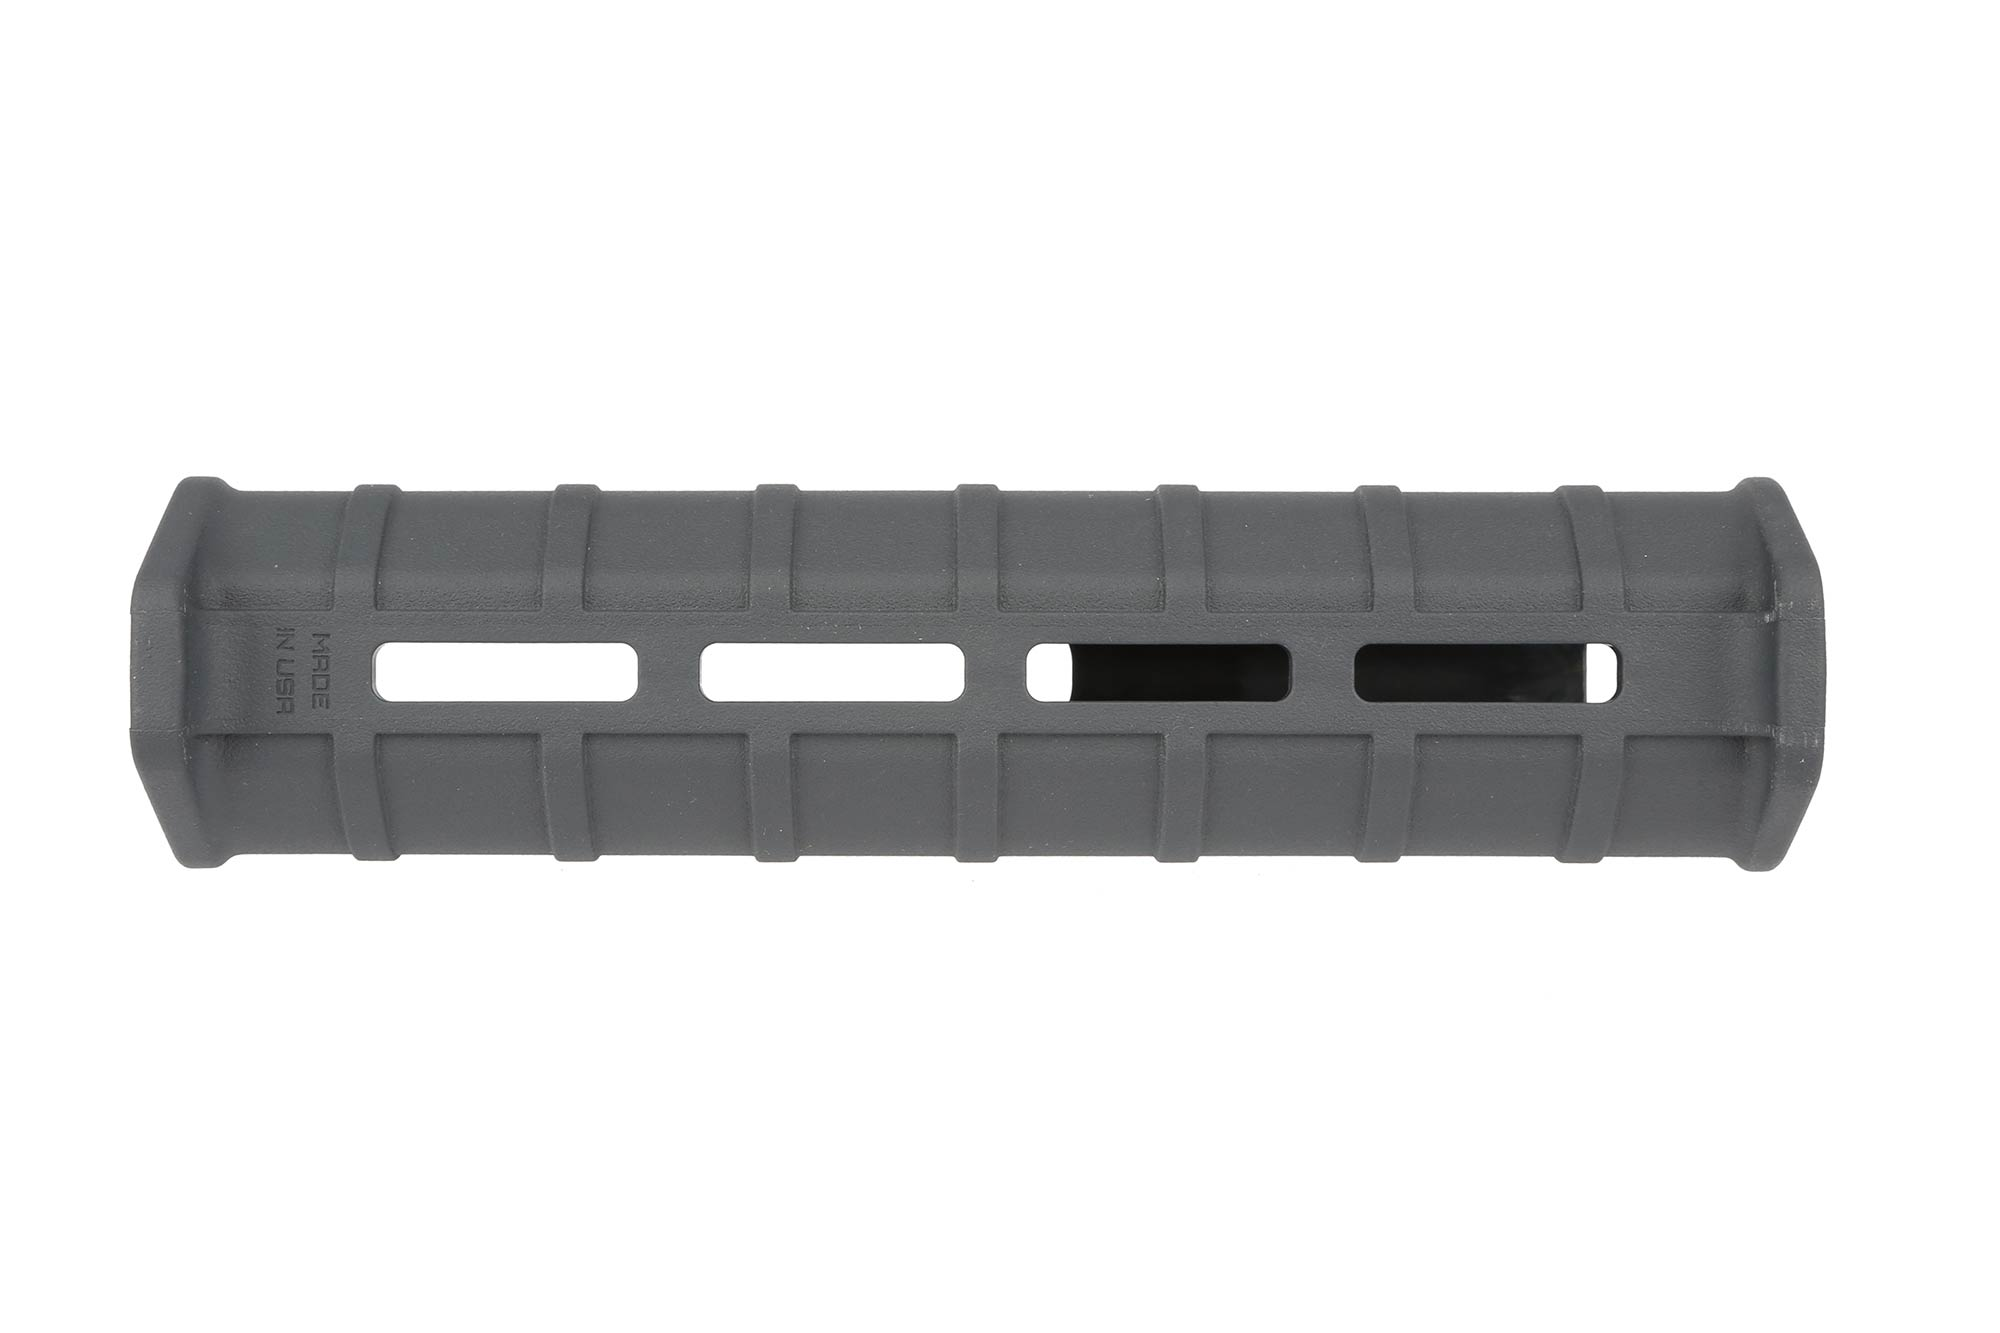 The Mossberg 590 Magpul forend features front and rear integrated hand stops